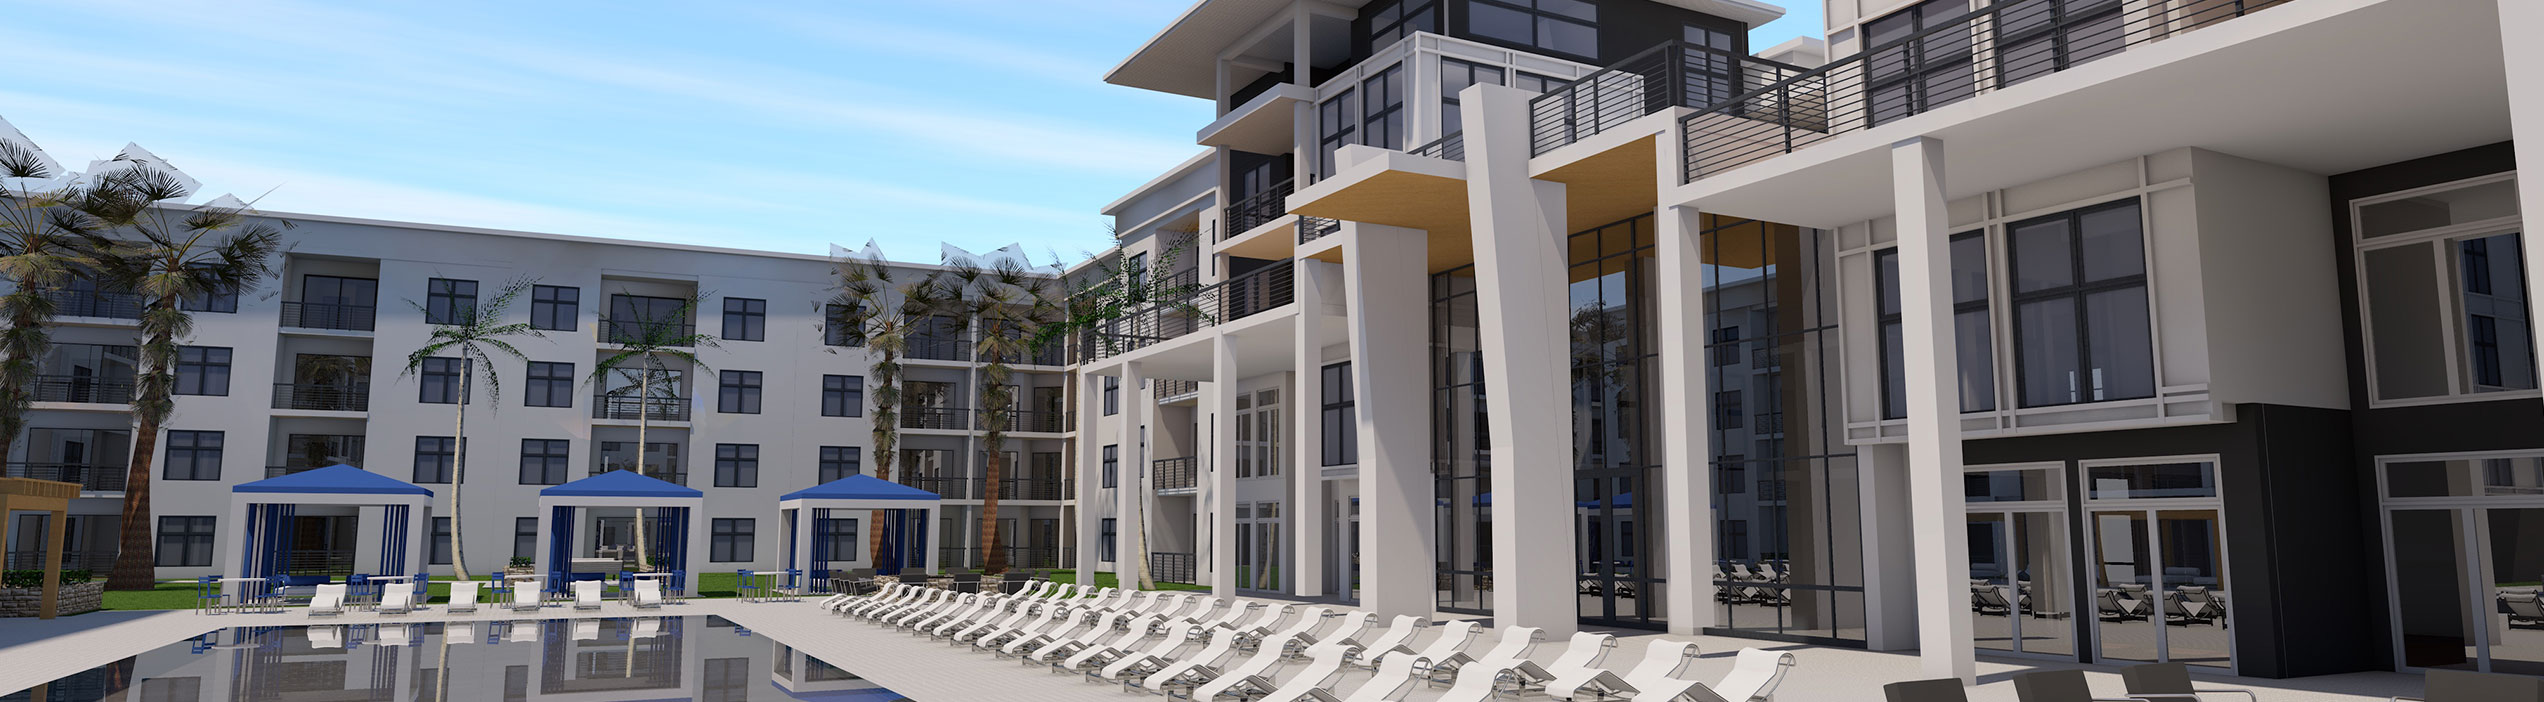 NEW AMENITY DESIGN COURTYARD SIDE 12-19-20 | MK Architecture - Commercial Architecture of Southwest Florida